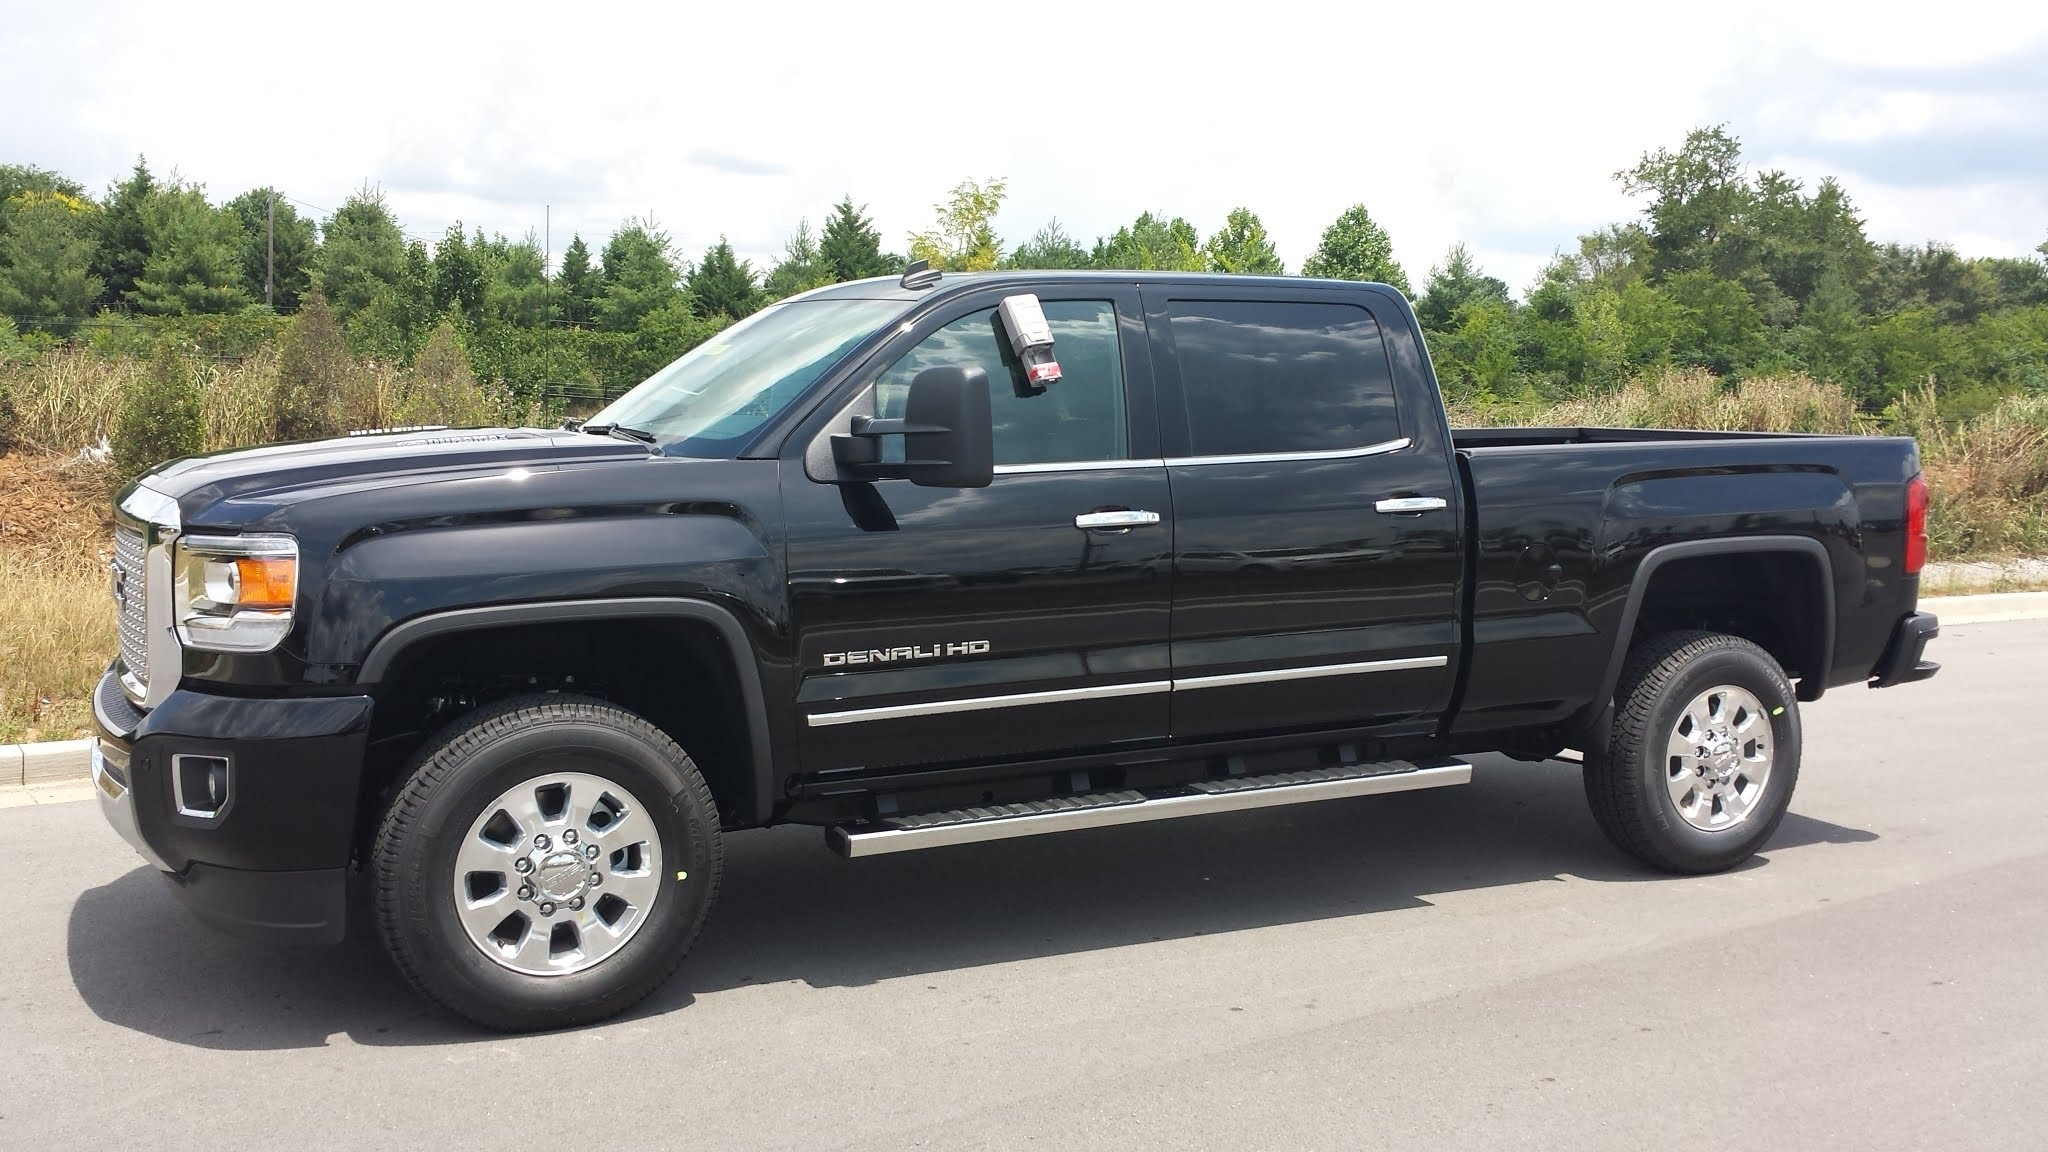 2015 GMC Sierra 3500hd #5